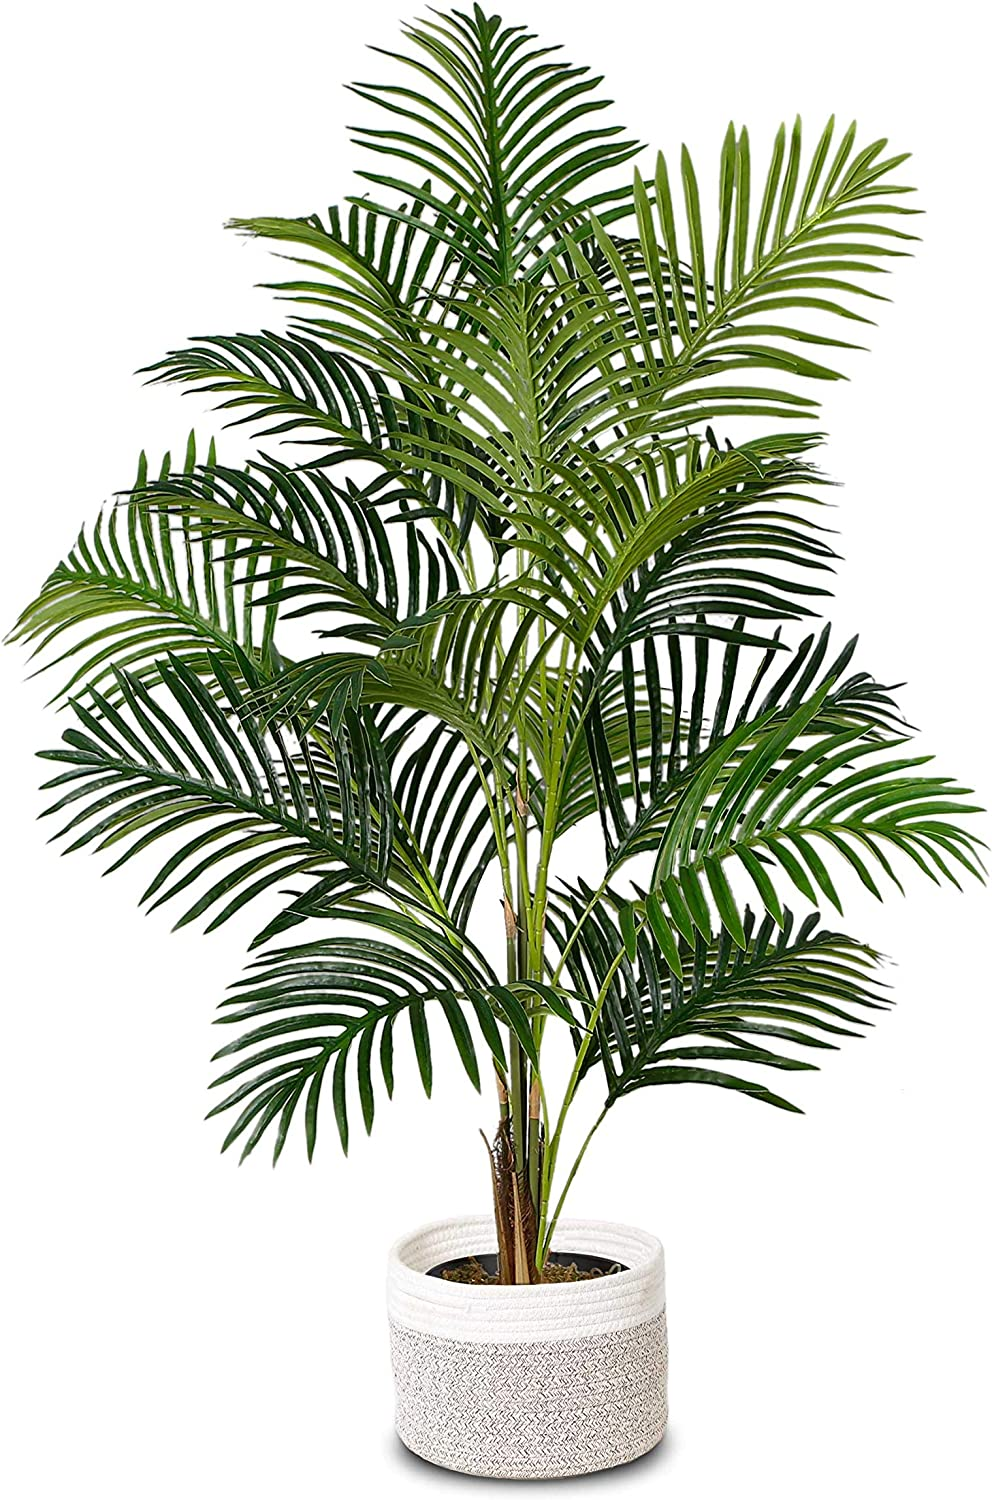 """Elpidan- Artificial Areca Palm Tree Plant Decor 47"""", Fake Palm Tree Plants, Silk Faux House Plants Indoor Tree, Fake Plant 